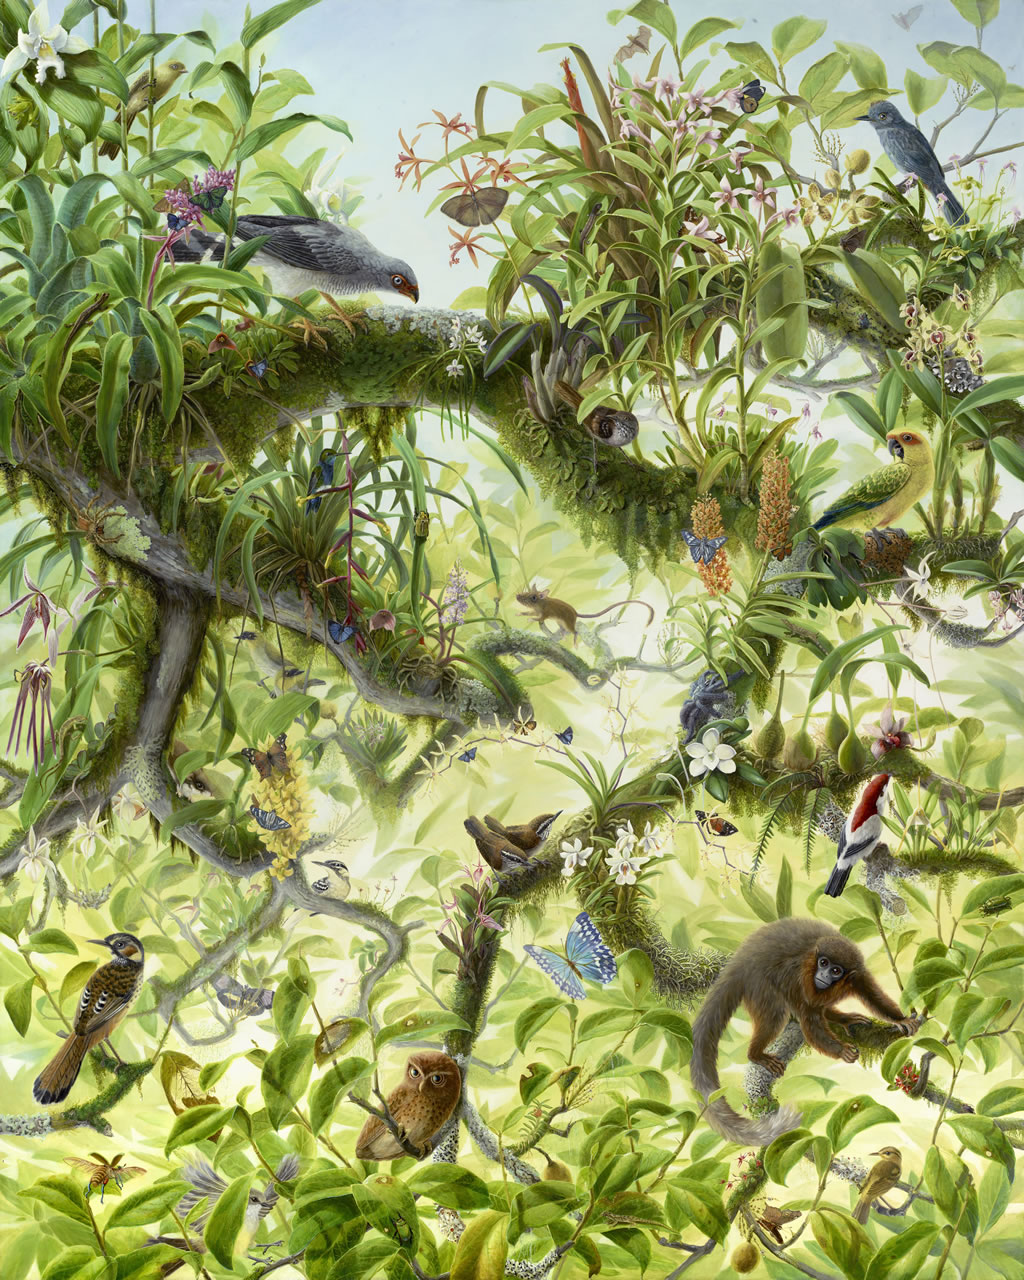 artwork depicting a group of animals in a tree canopy  sc 1 st  Earth Island Institute & Still Life with Life | Earth Island Journal | Earth Island Institute